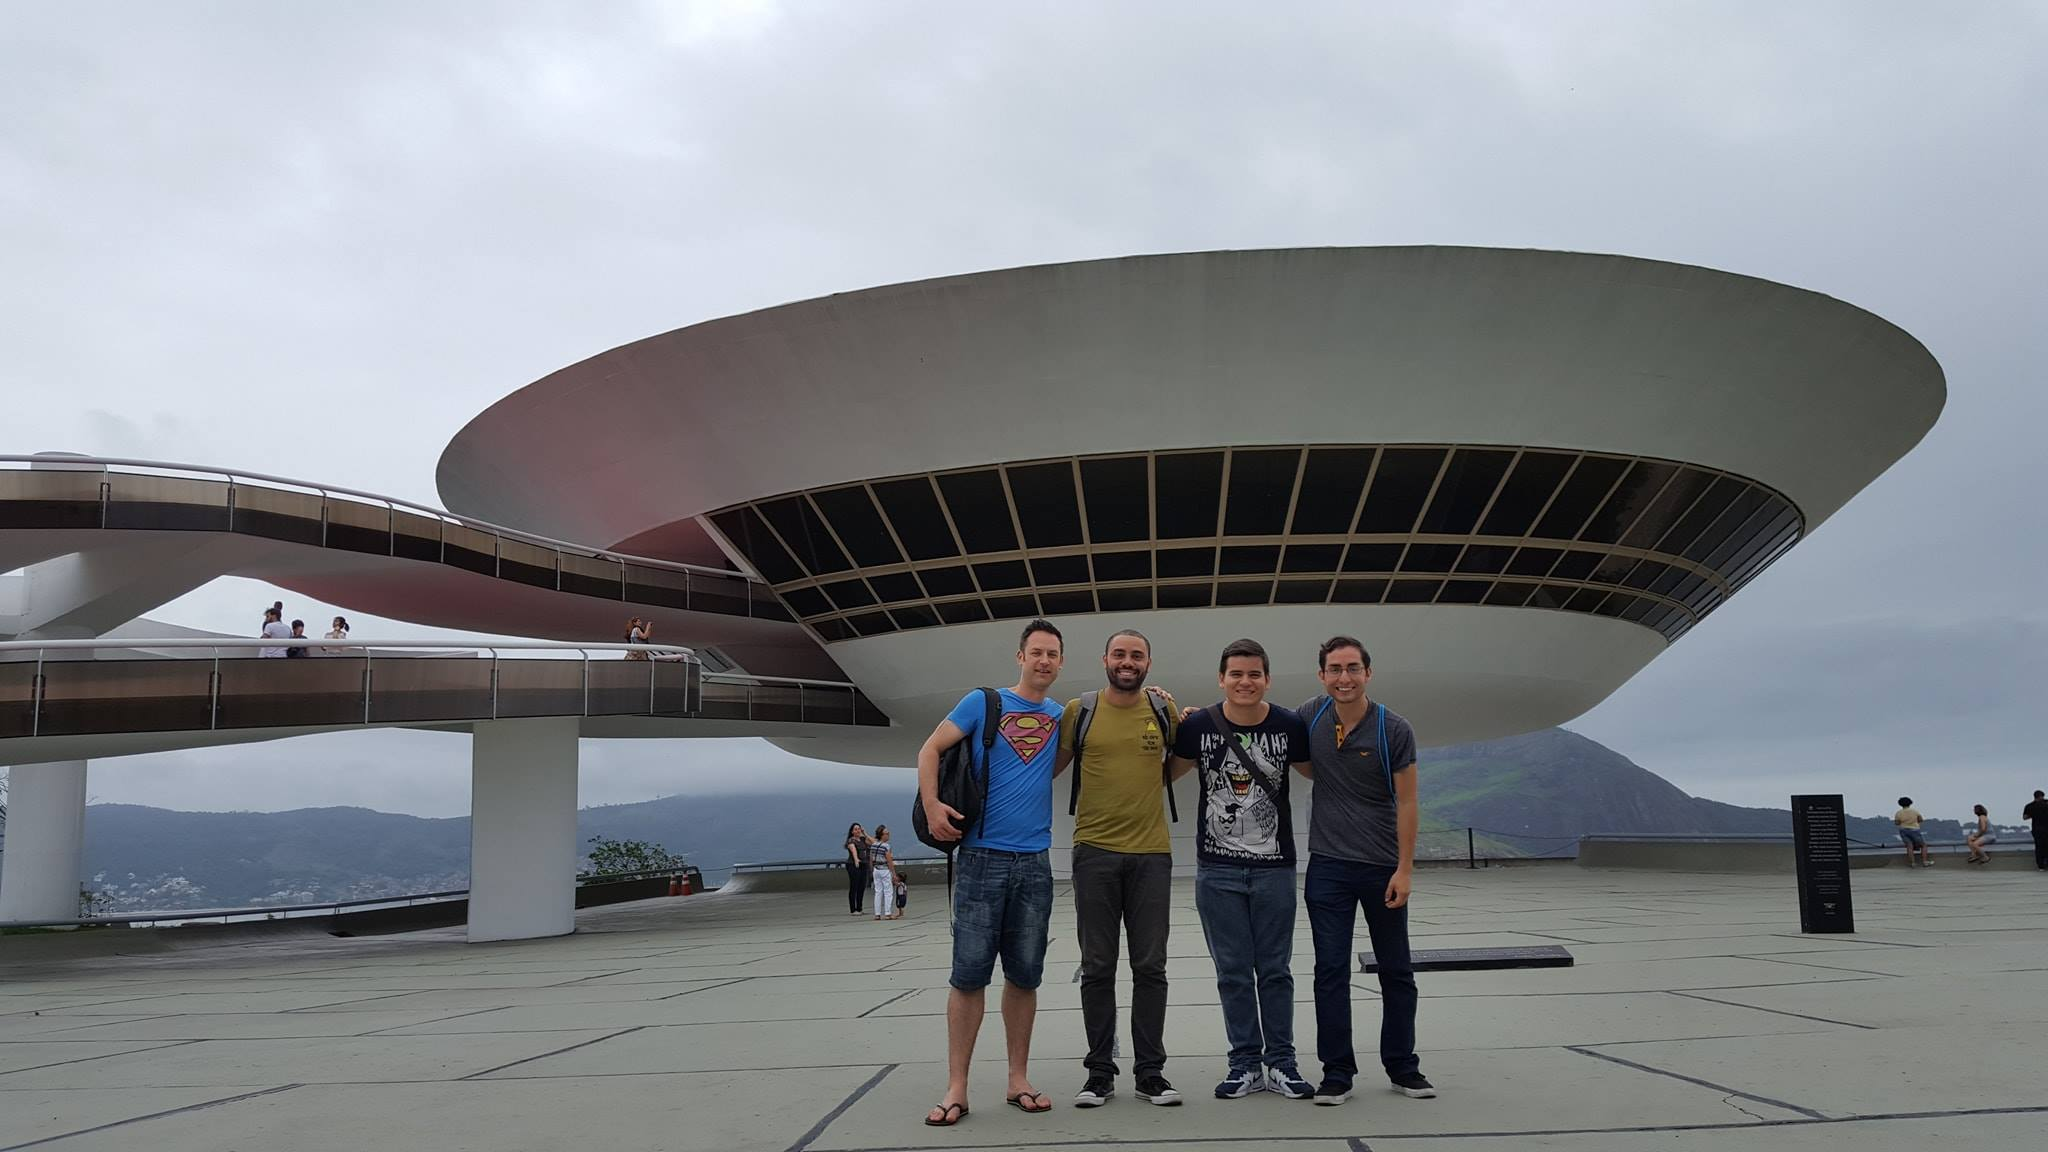 Meeting Oscar Niemeyer at the Niterói Museum of Comtemporary Art.